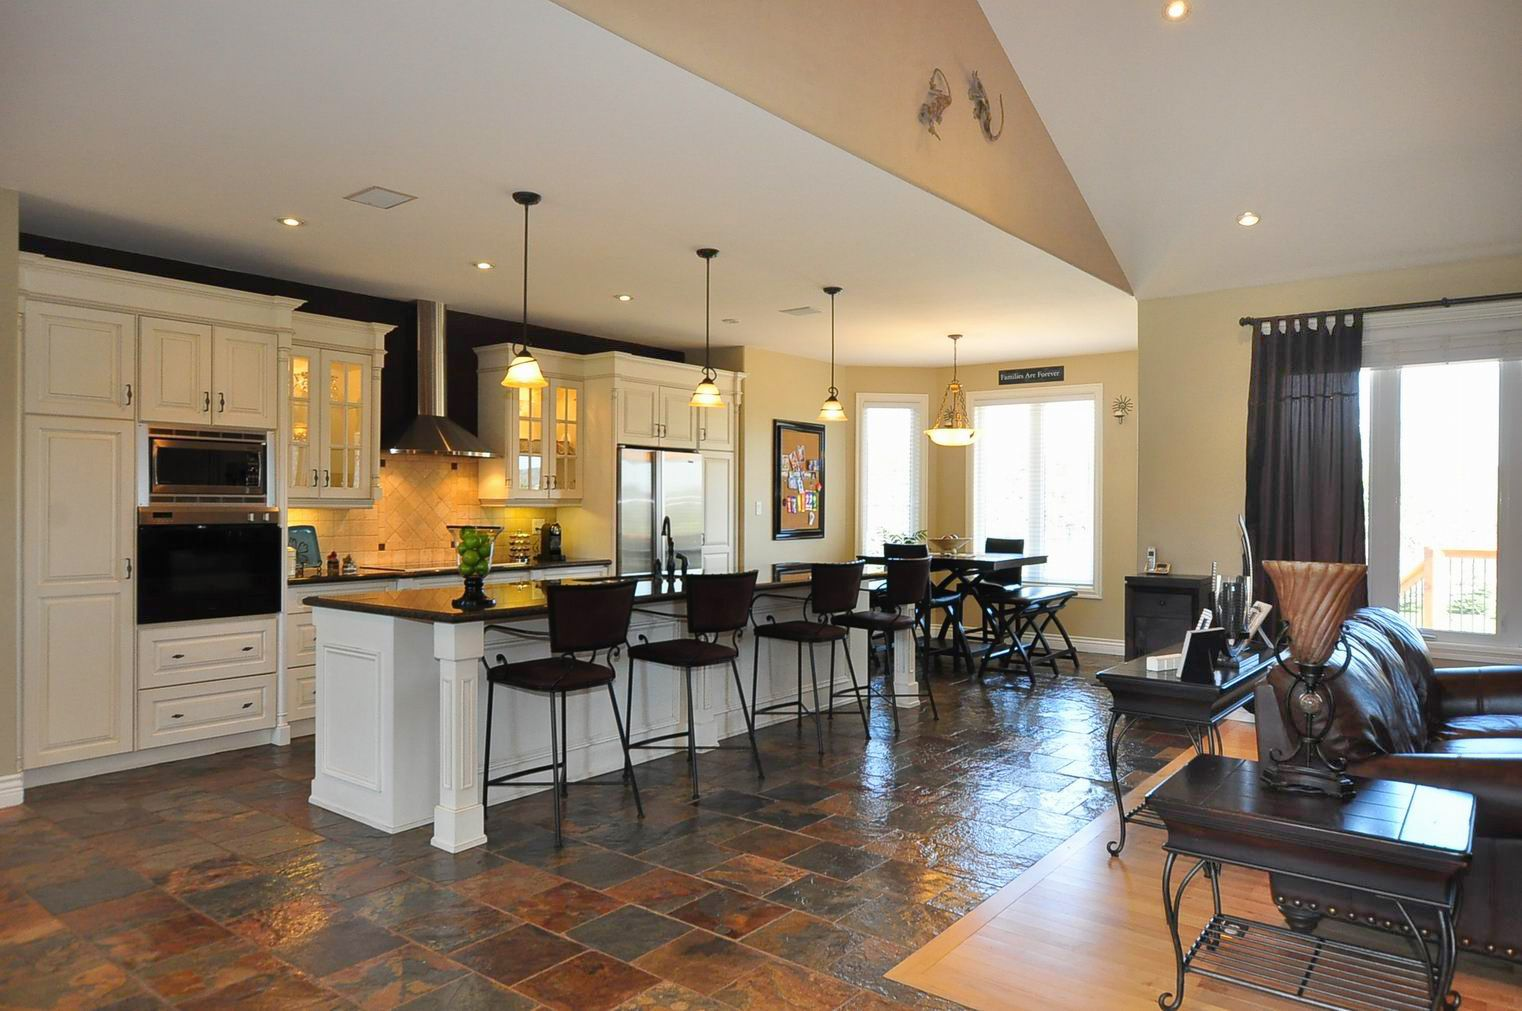 Image Result For Open Concept Kitchen Living Room Floor